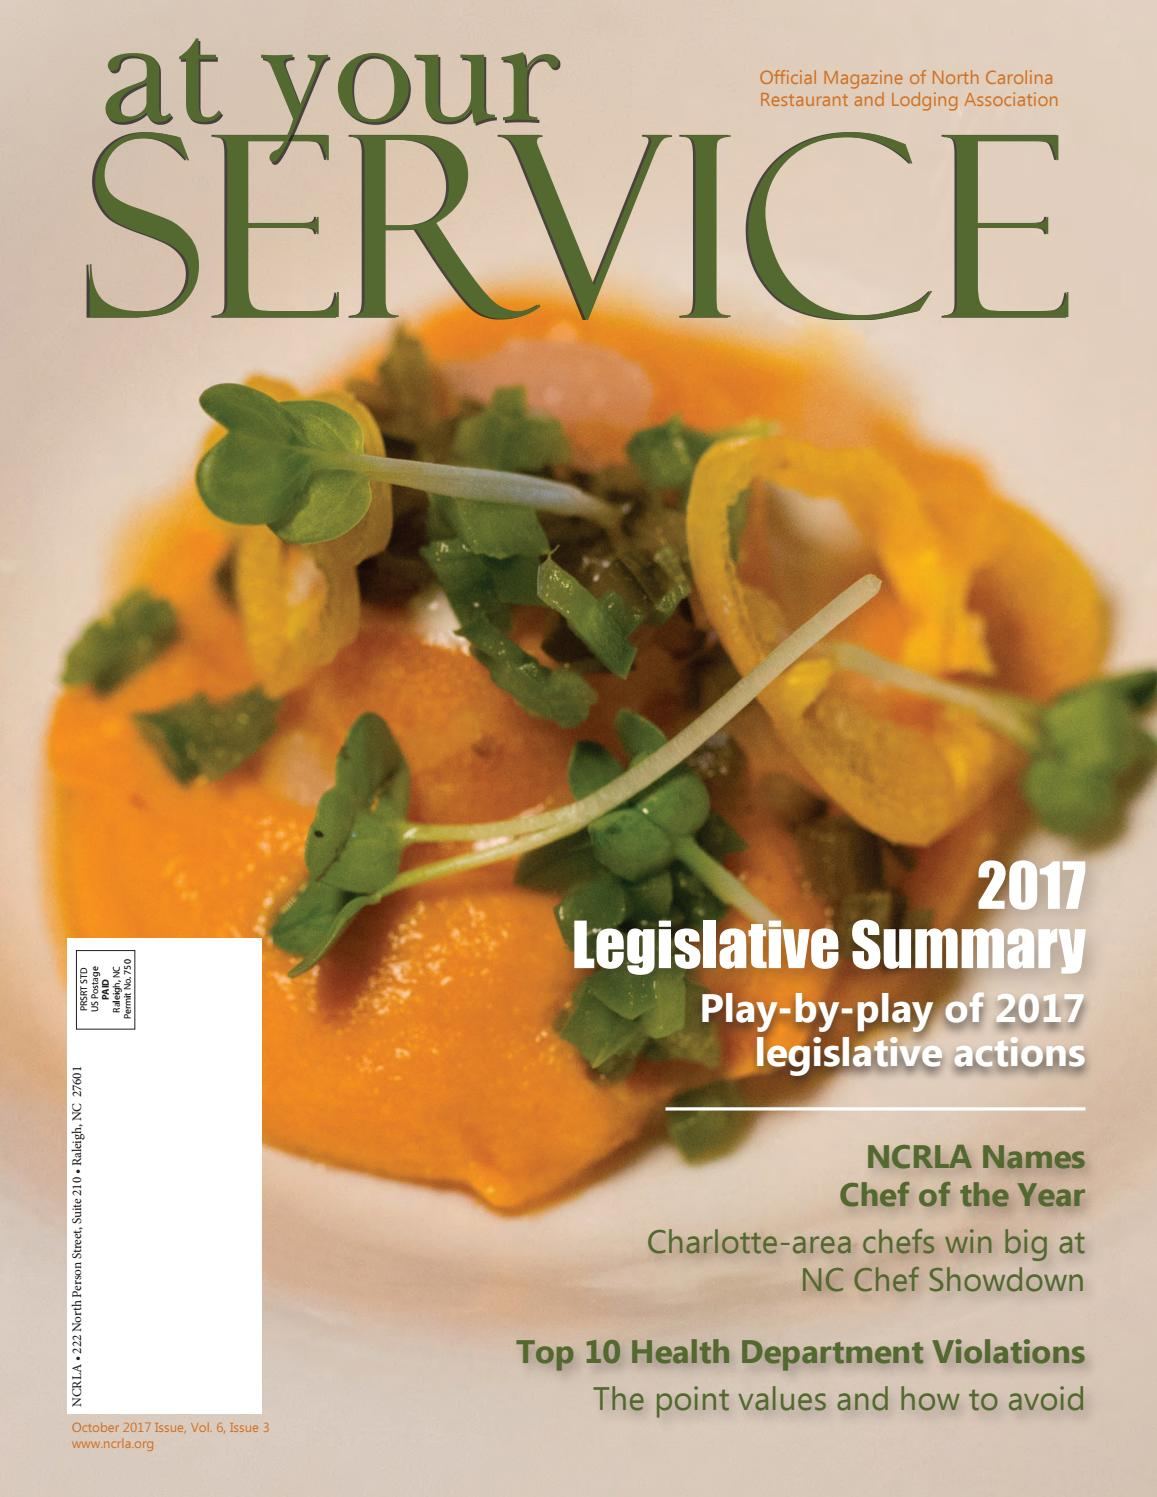 At Your Service, Fall 2017 by NC Restaurant & Lodging